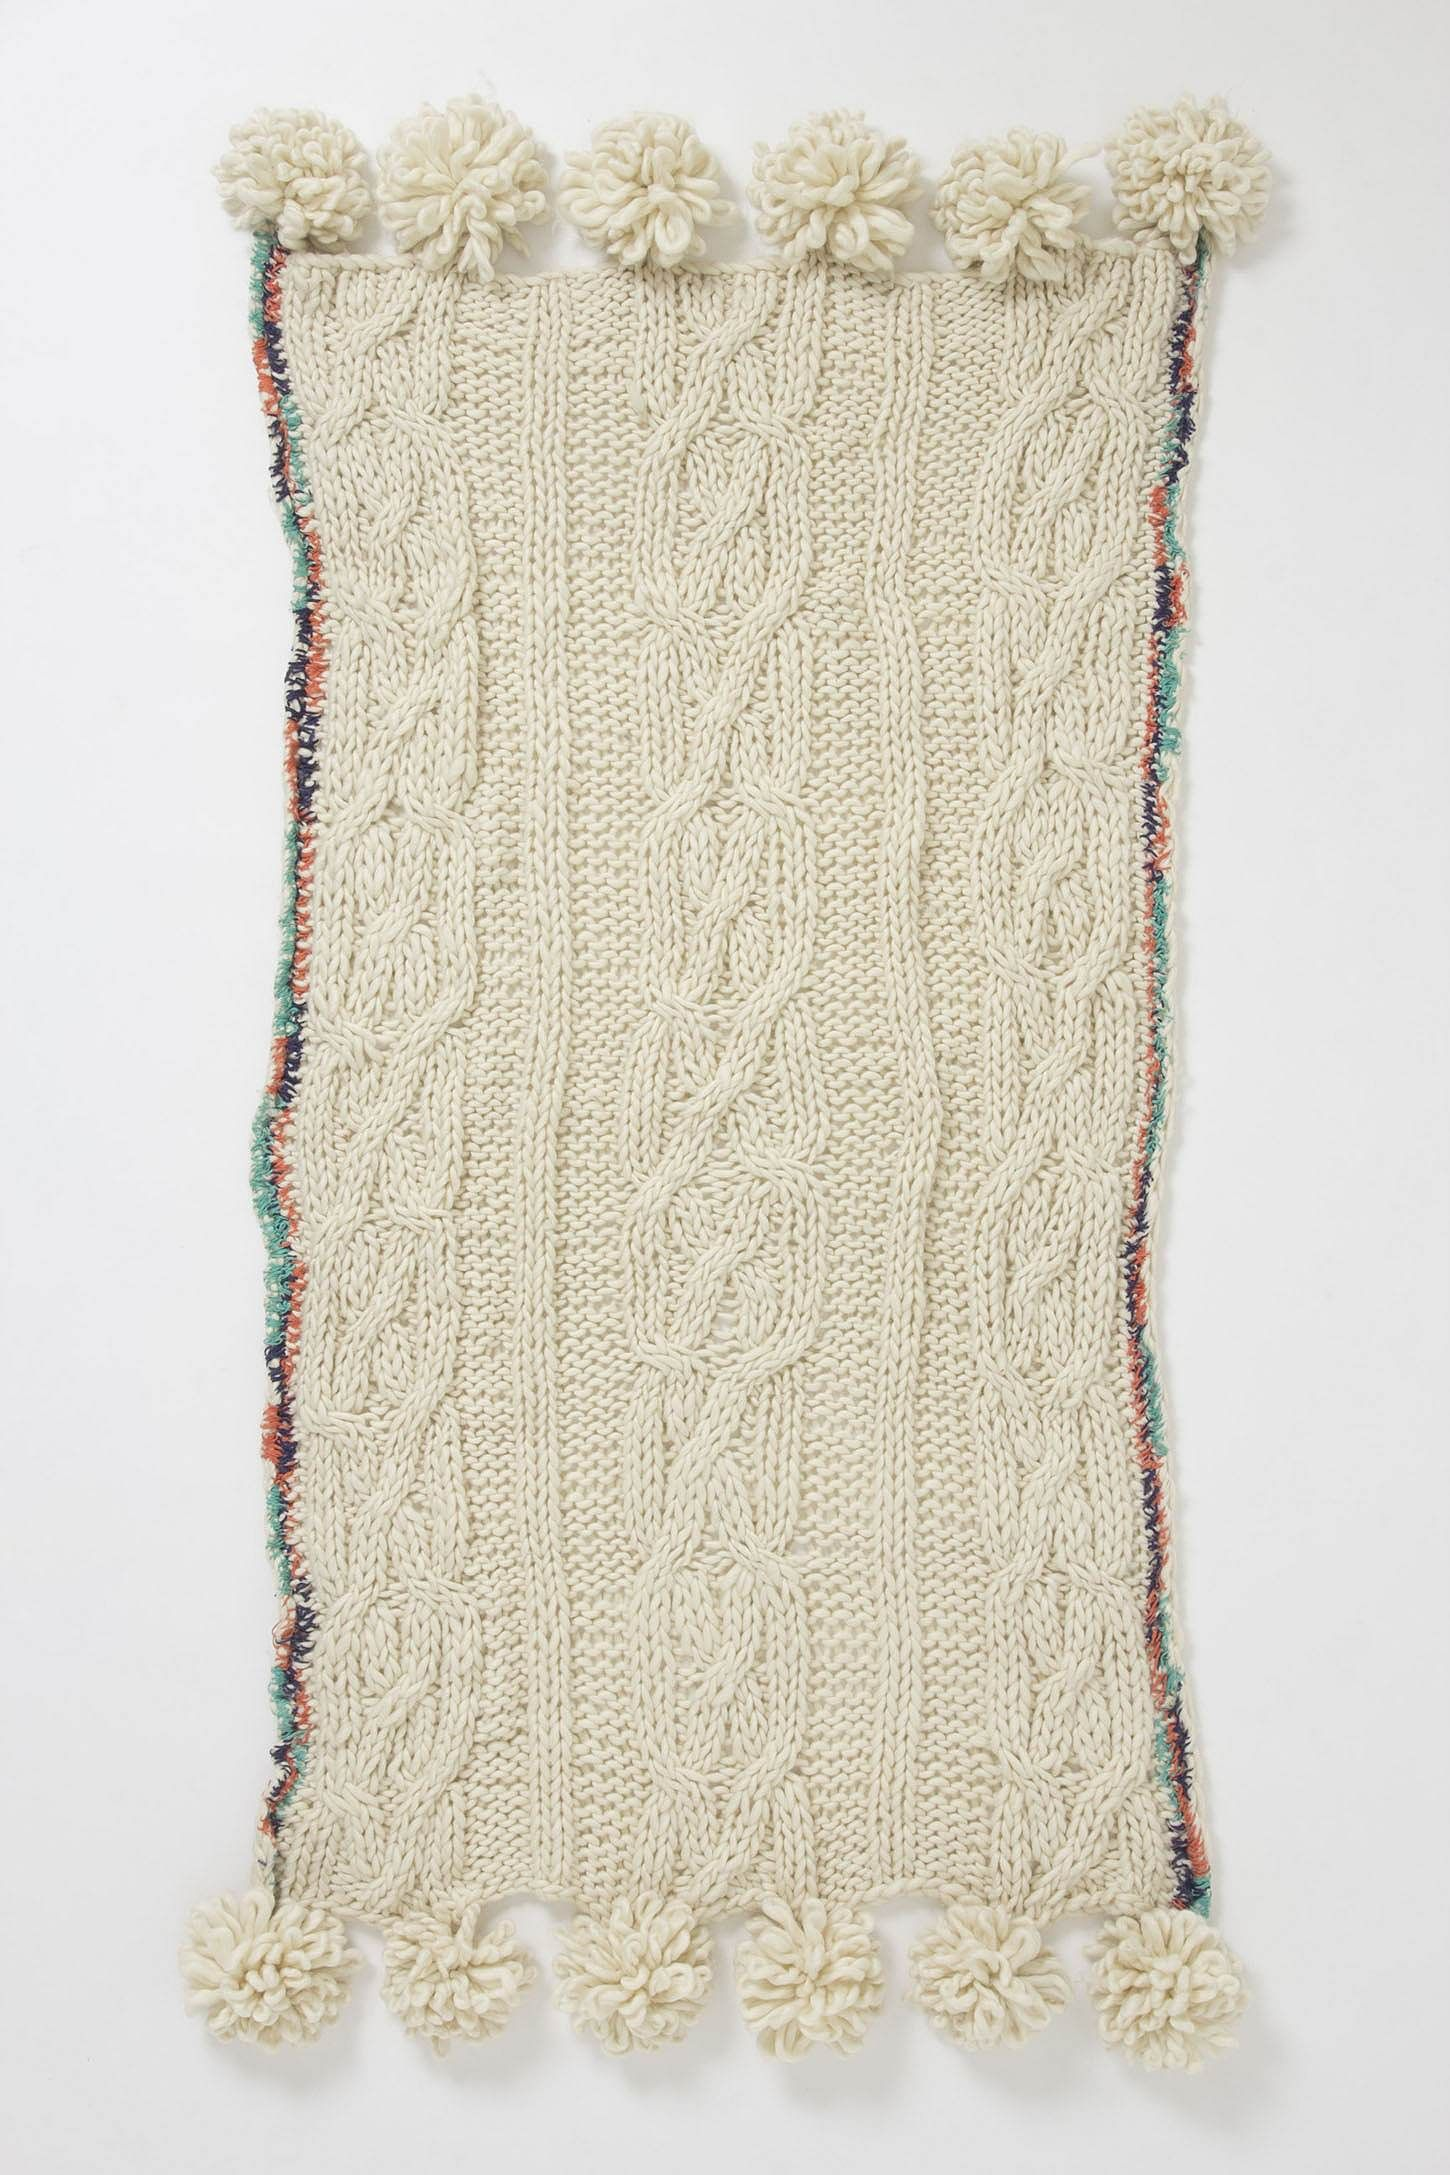 Cabled Throw - Anthropologie.com   For the Home   Pinterest ...